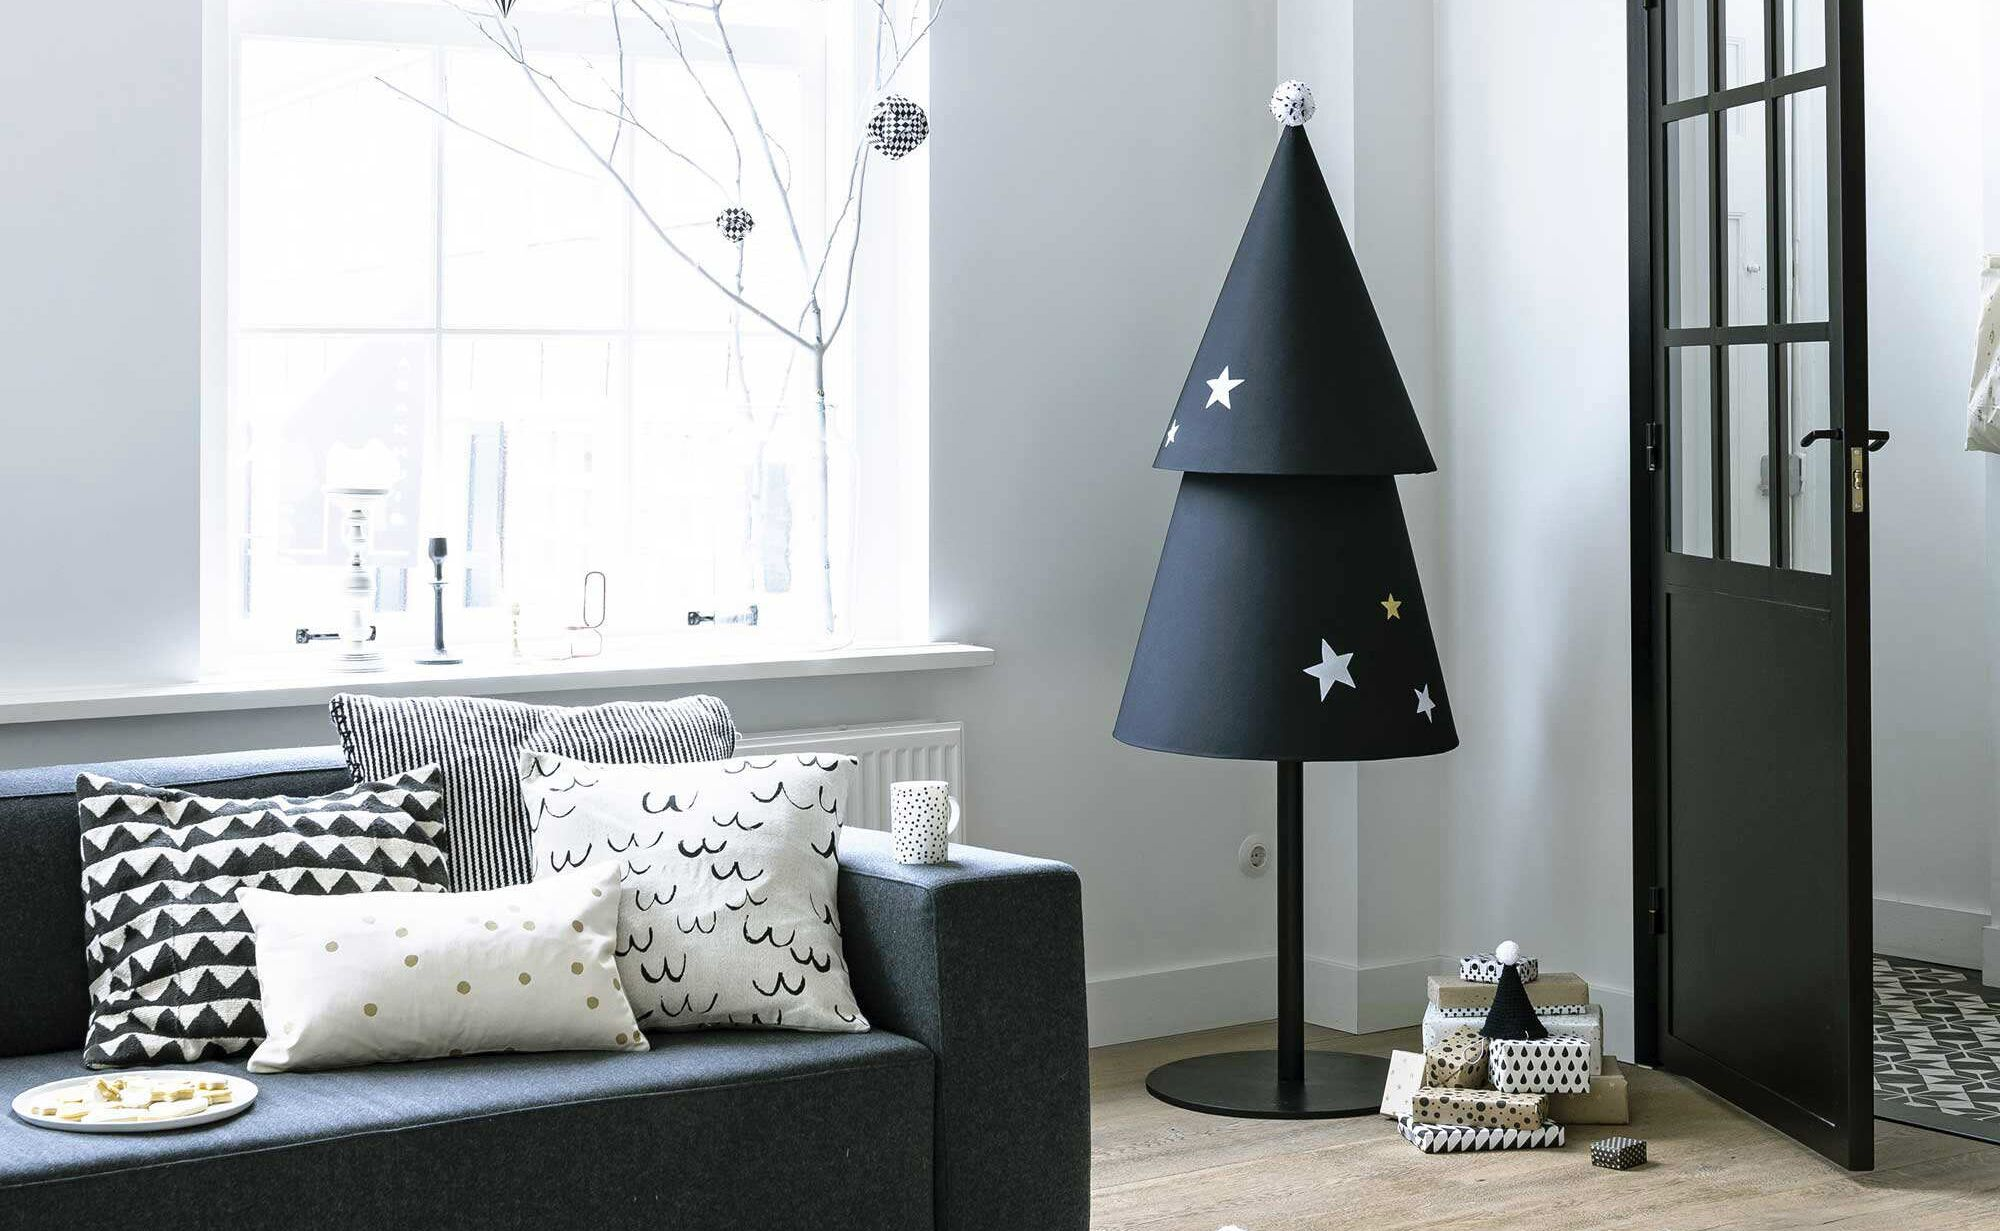 Non traditional christmas tree ideas - Non Traditional Christmas Tree Ideas 2